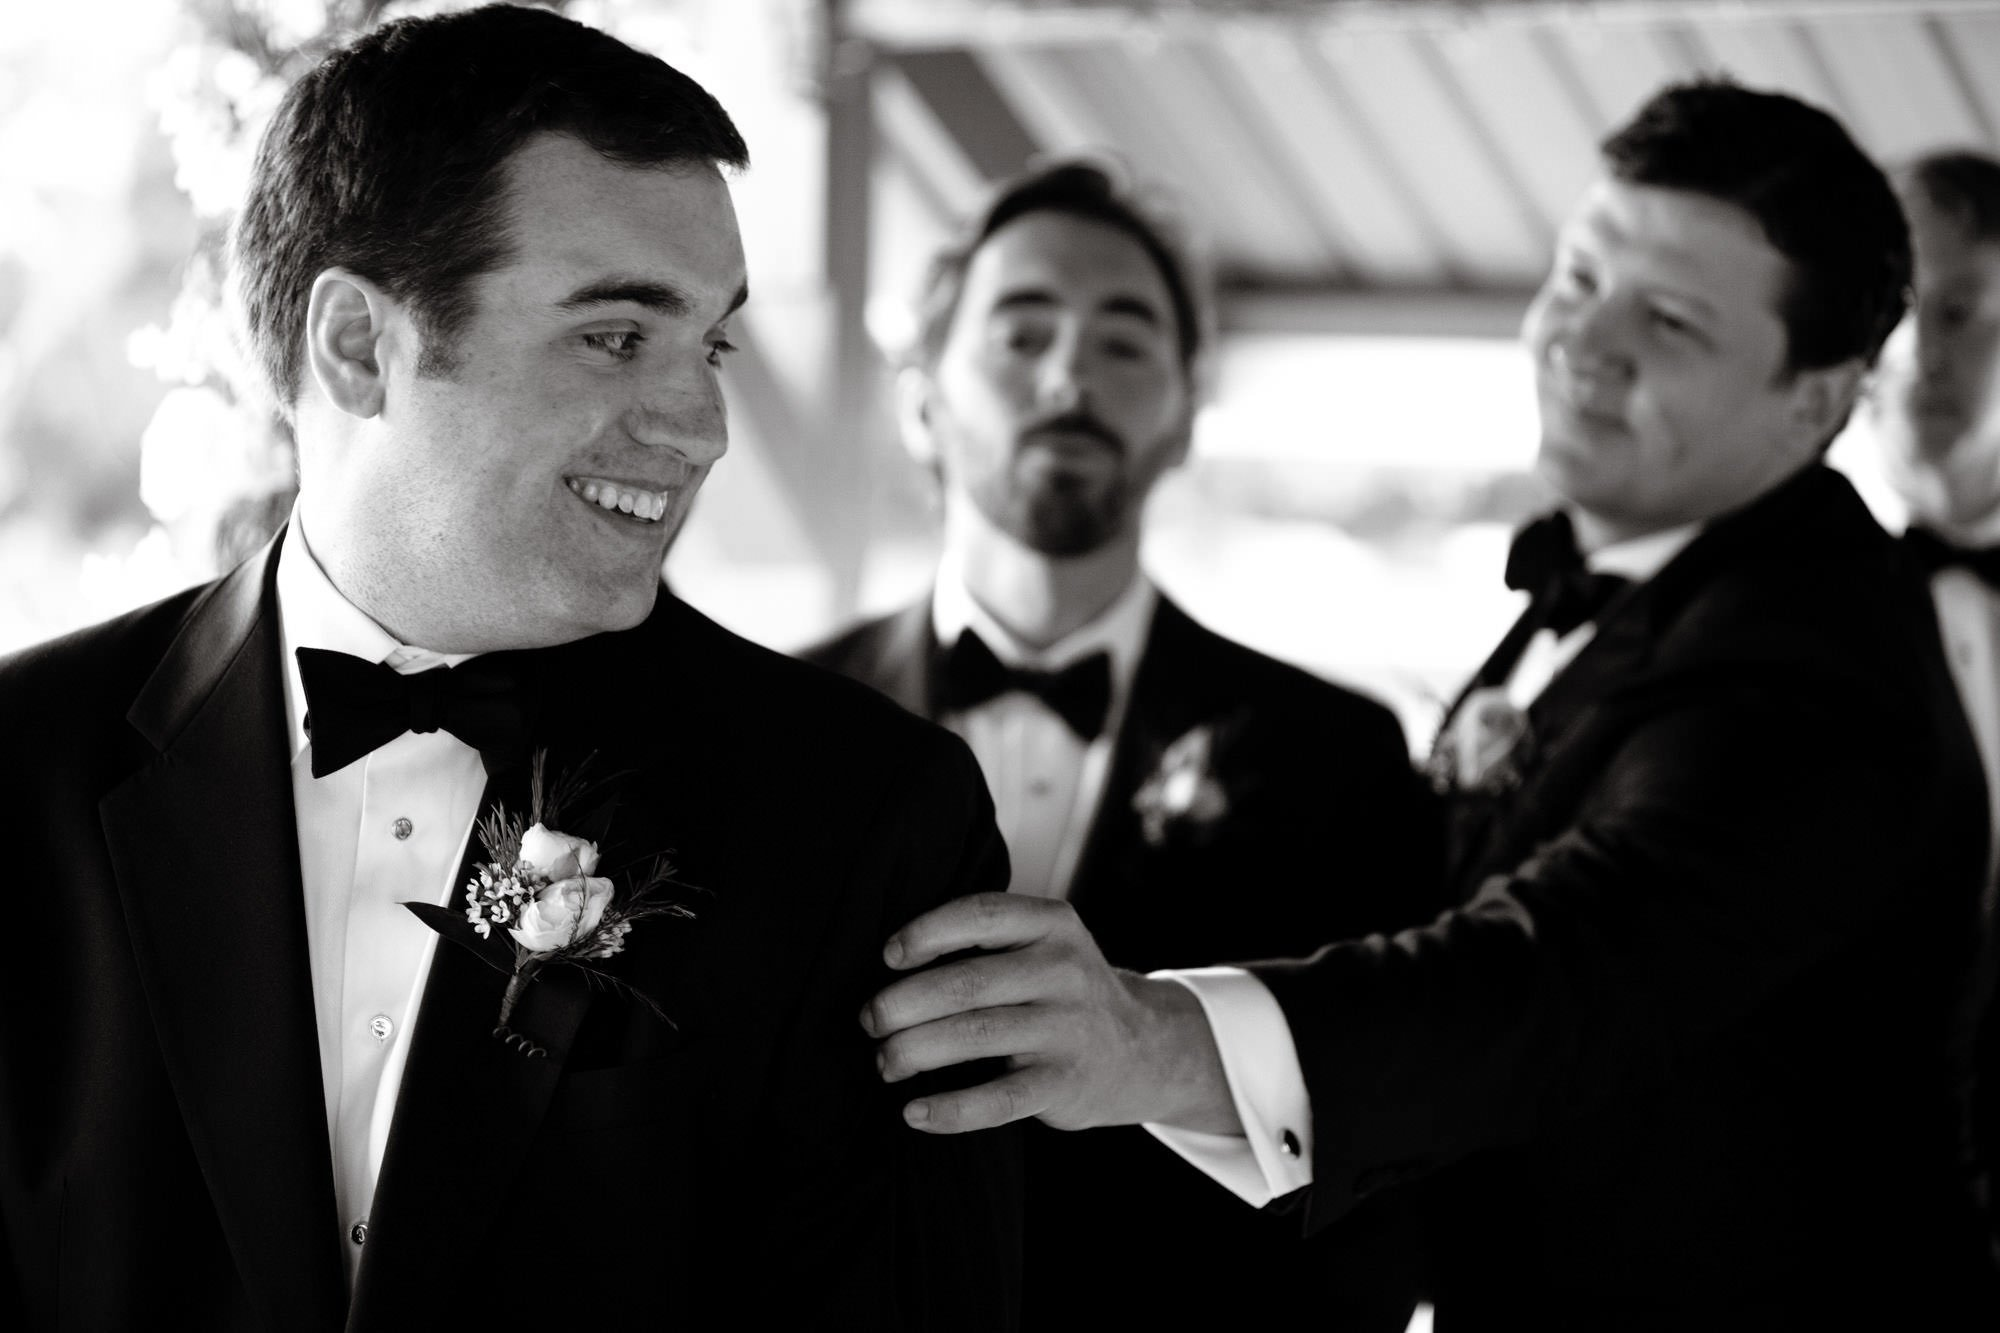 The groom is consoled by one of his groomsmen during the Oaks Waterfront Inn and Events Wedding ceremony.